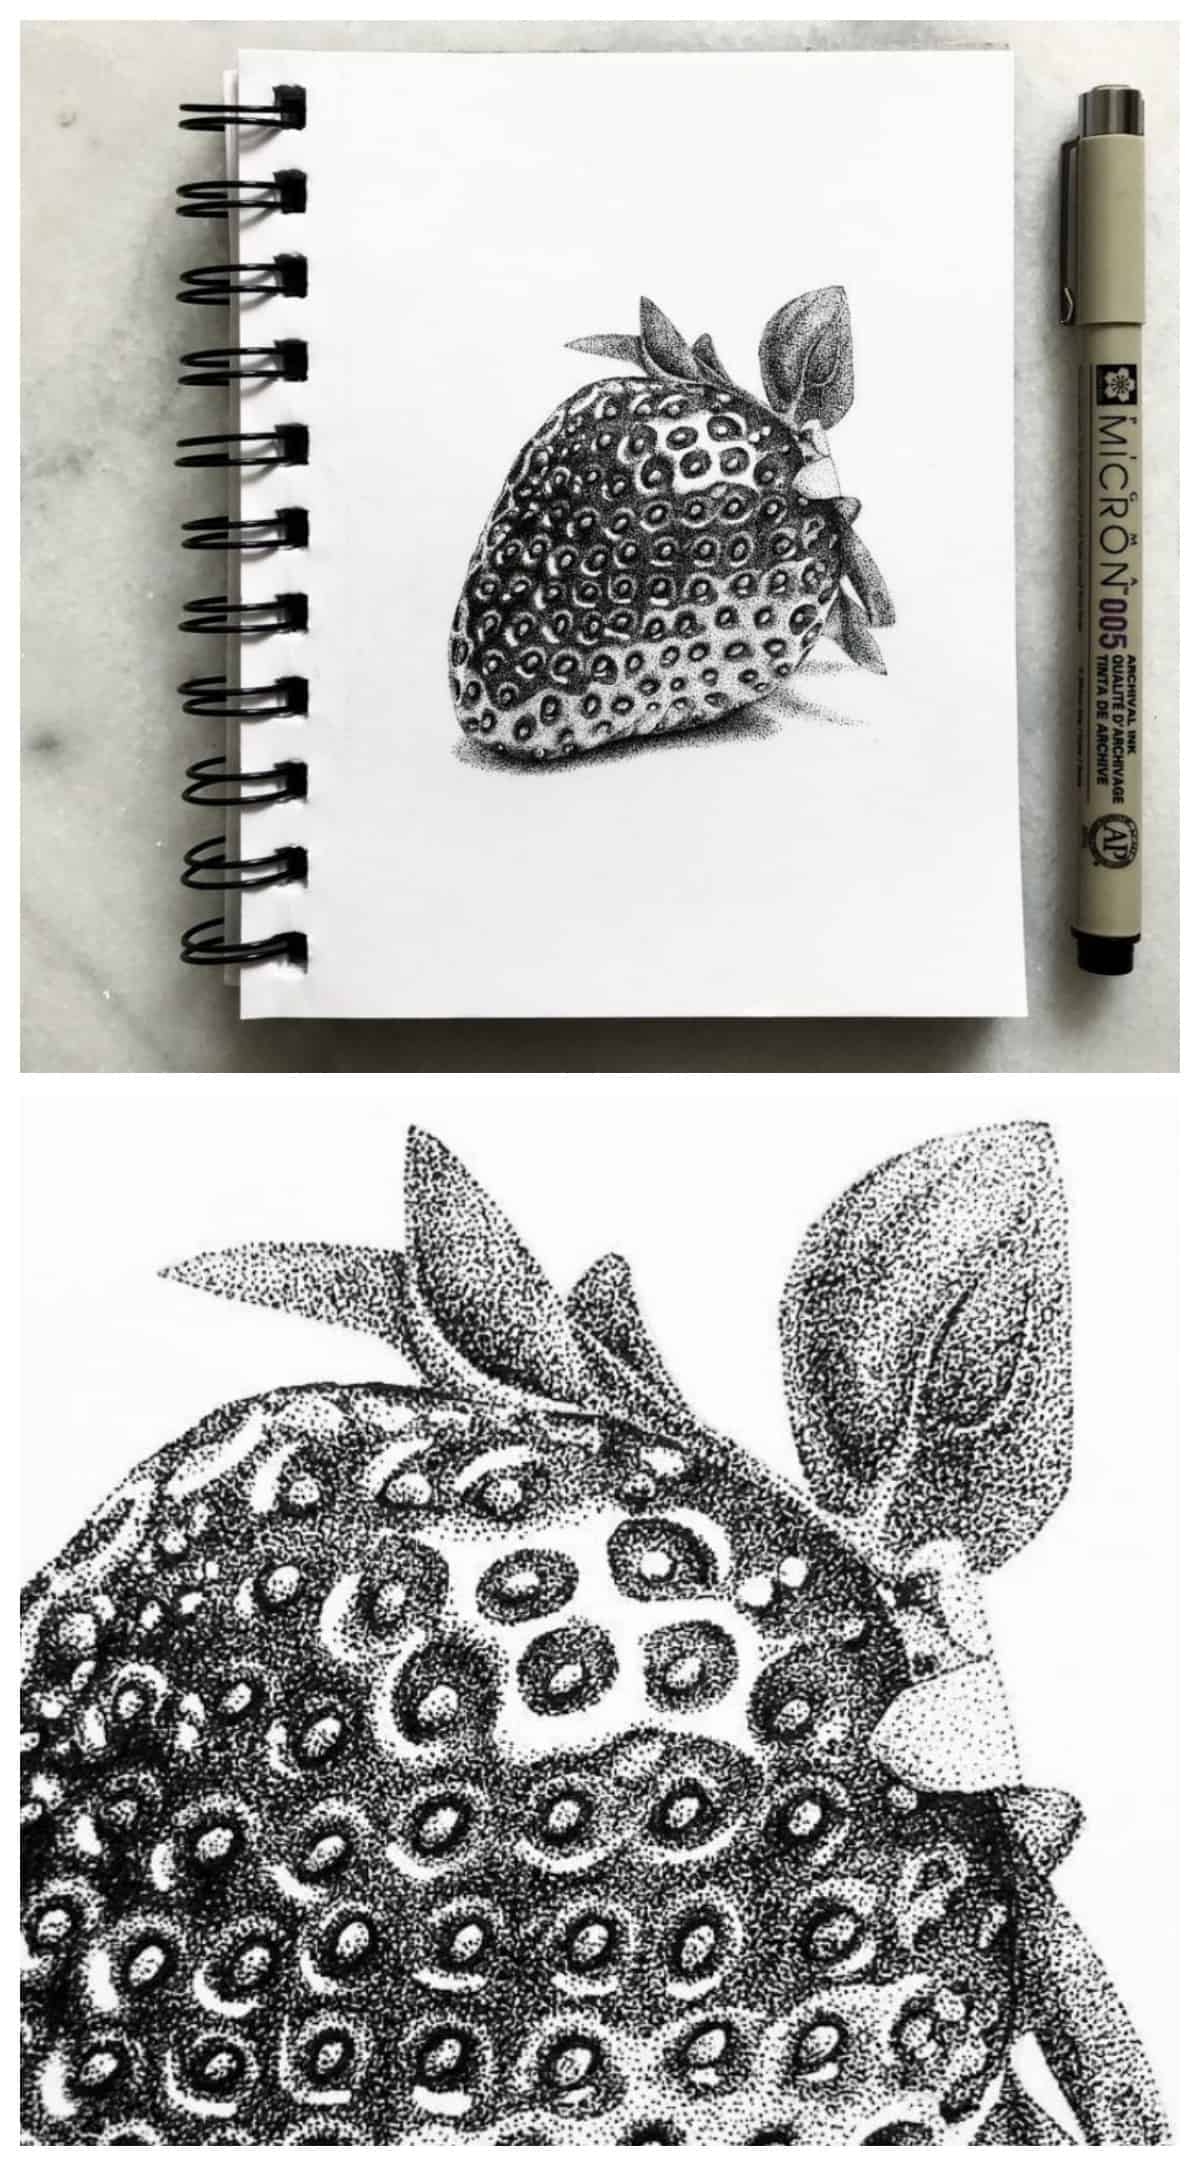 Pointillism Artists Have Evolved The Technique Surprisingly Through